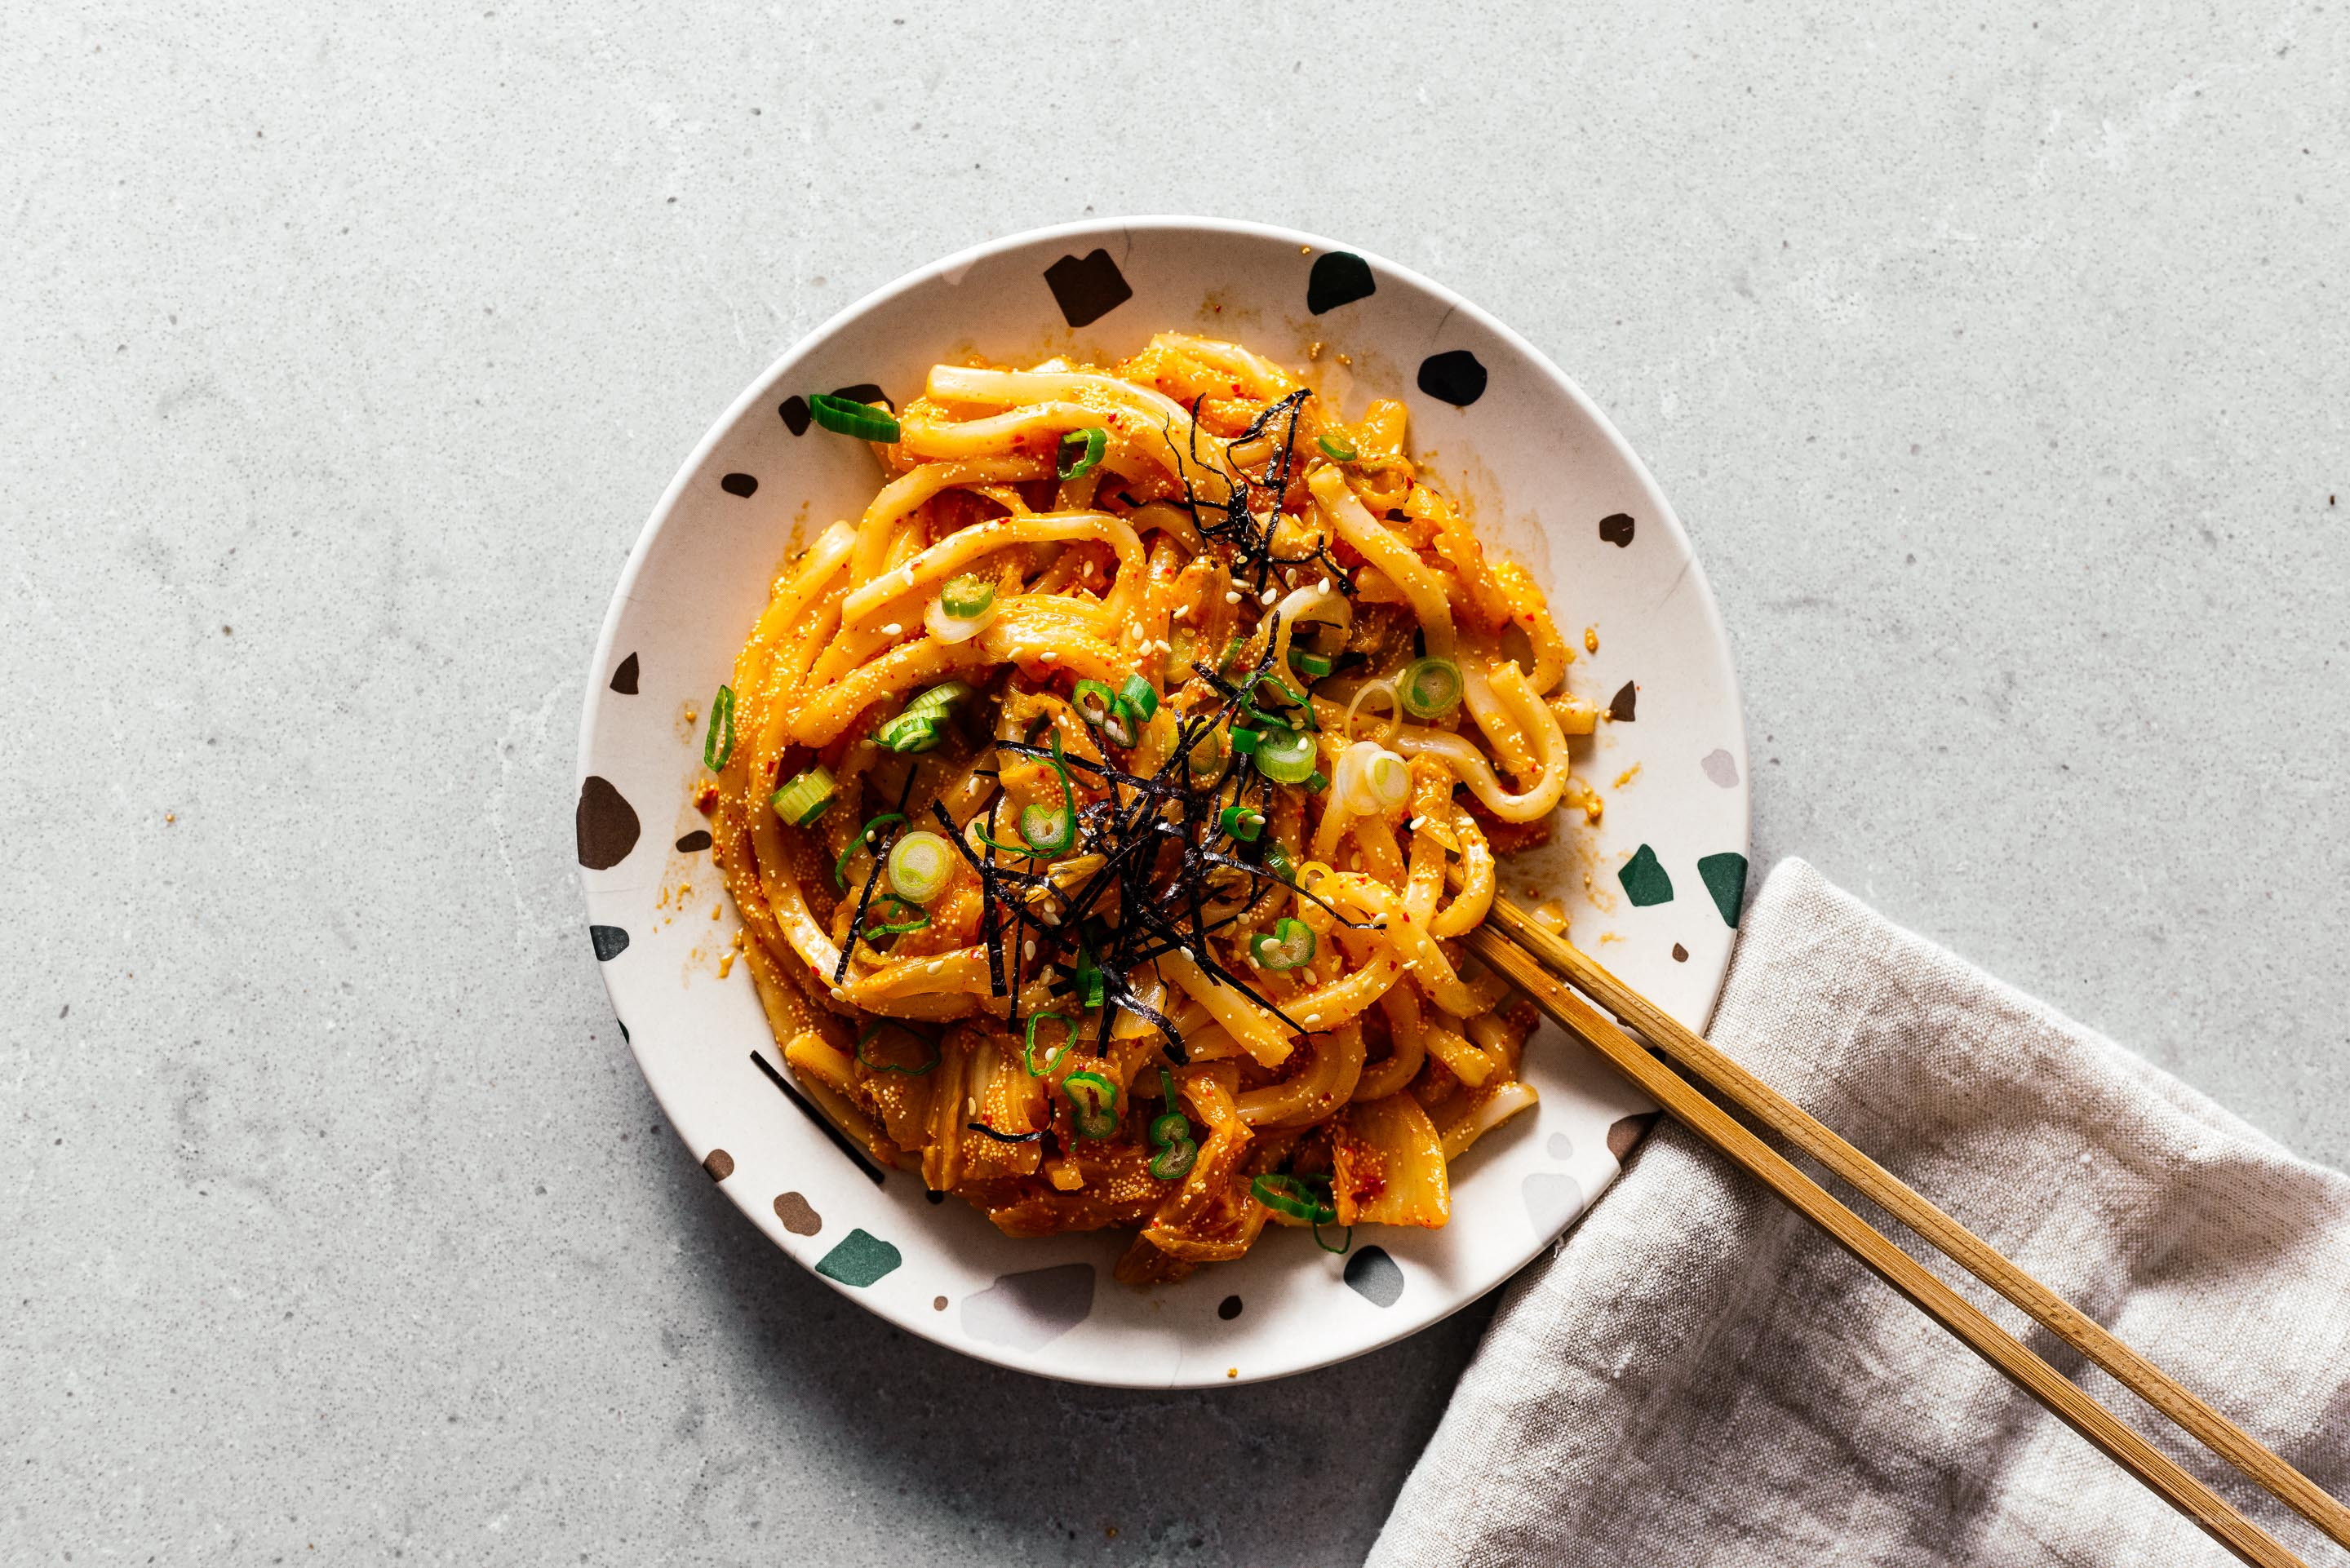 Spicy, Savory, and Completely Addictive Mentaiko Kimchi Udon